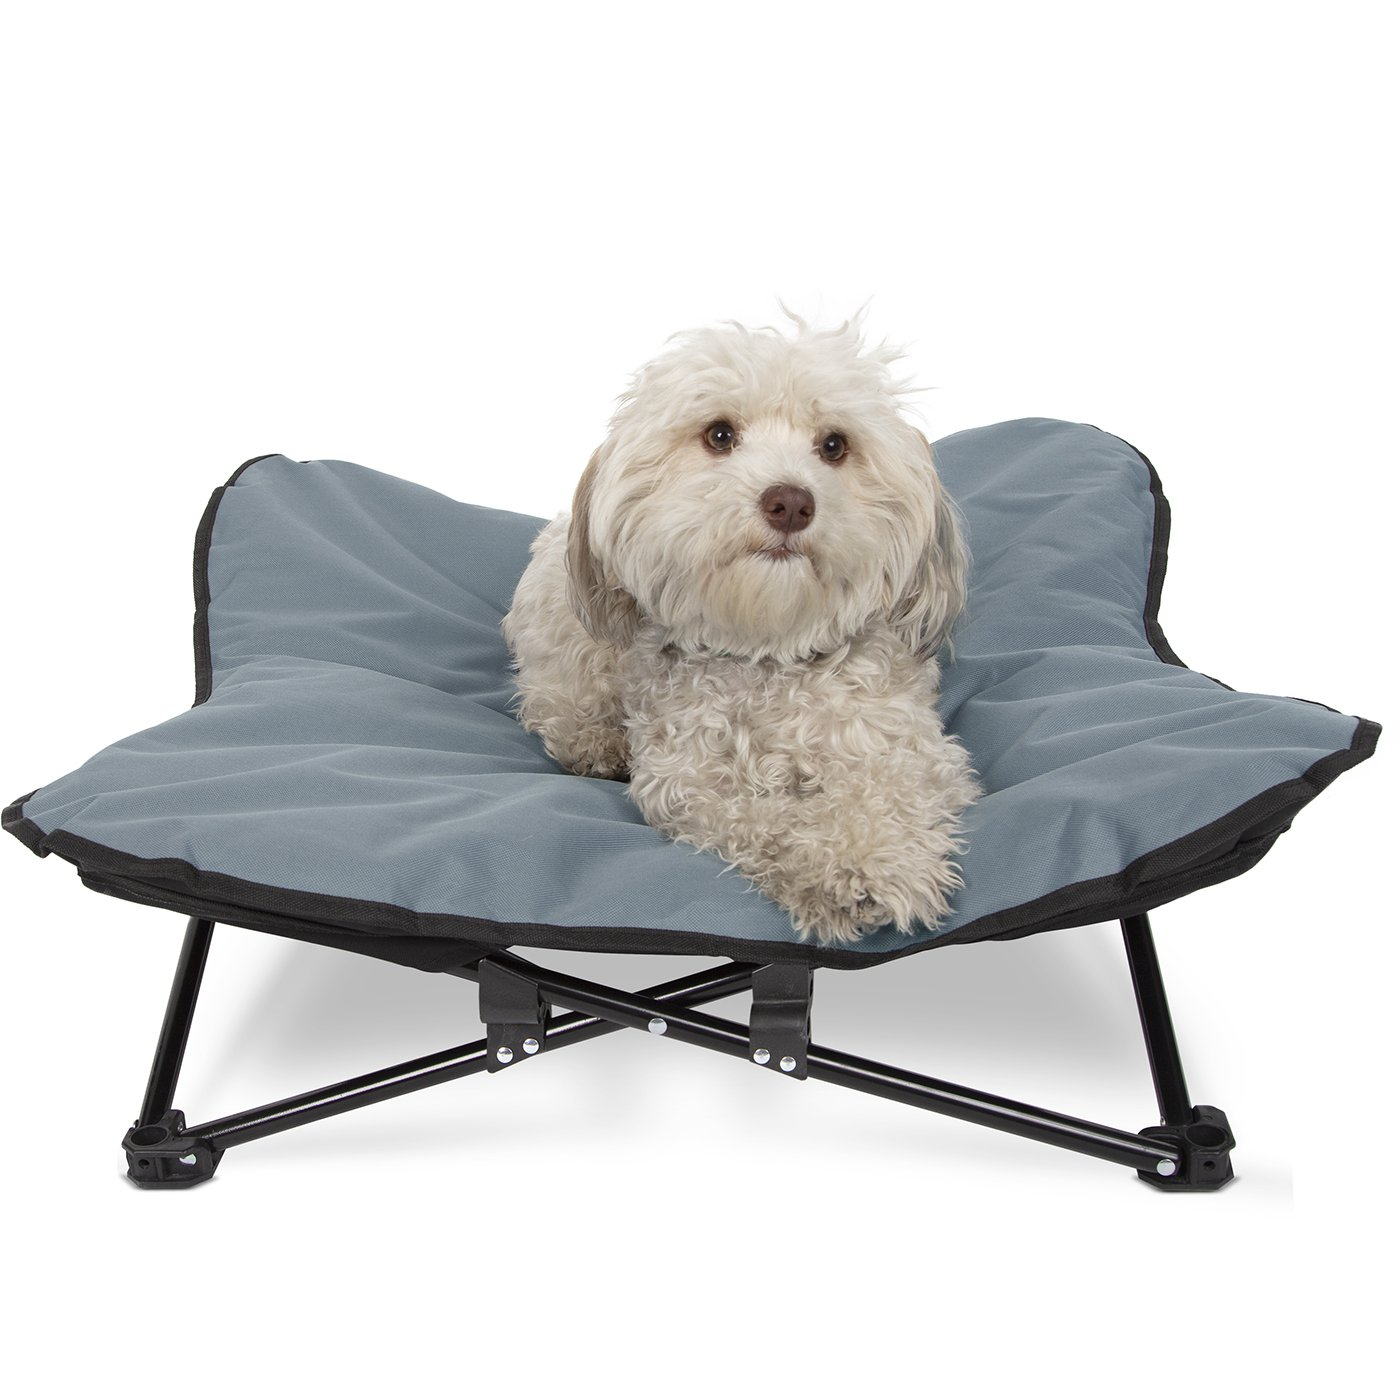 Paws & Pals Elevated Pet Bed for Dogs & Cats Outdoor Indoor Camping Raised Cot - Medium